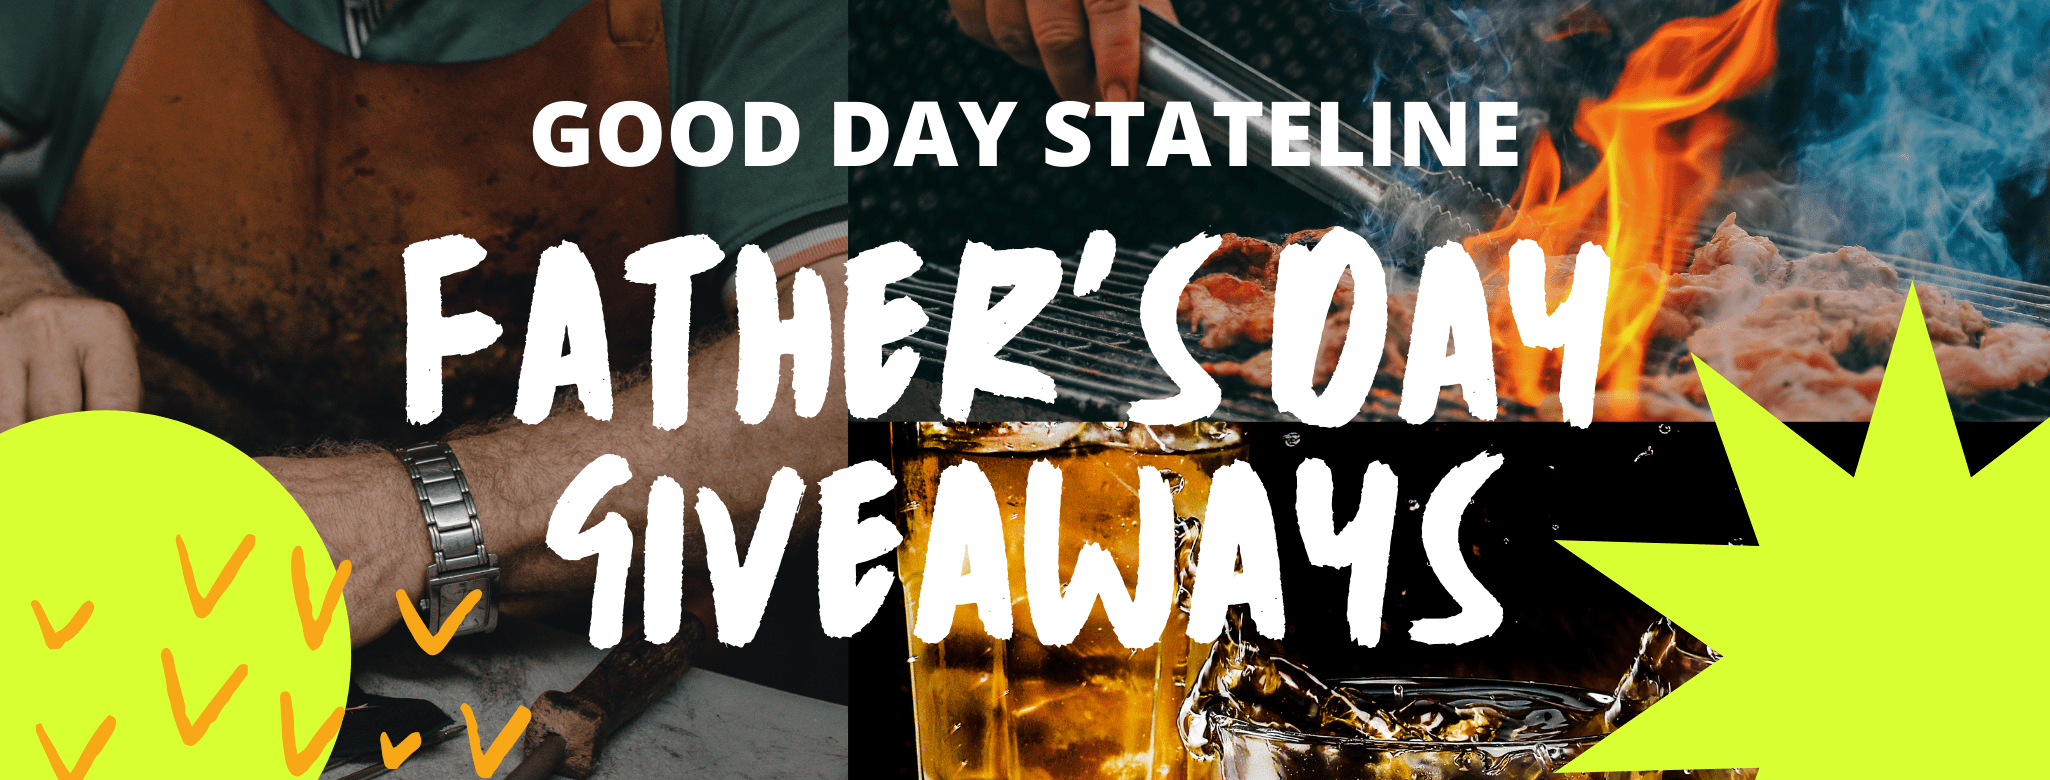 GDS Father's Day Giveaways